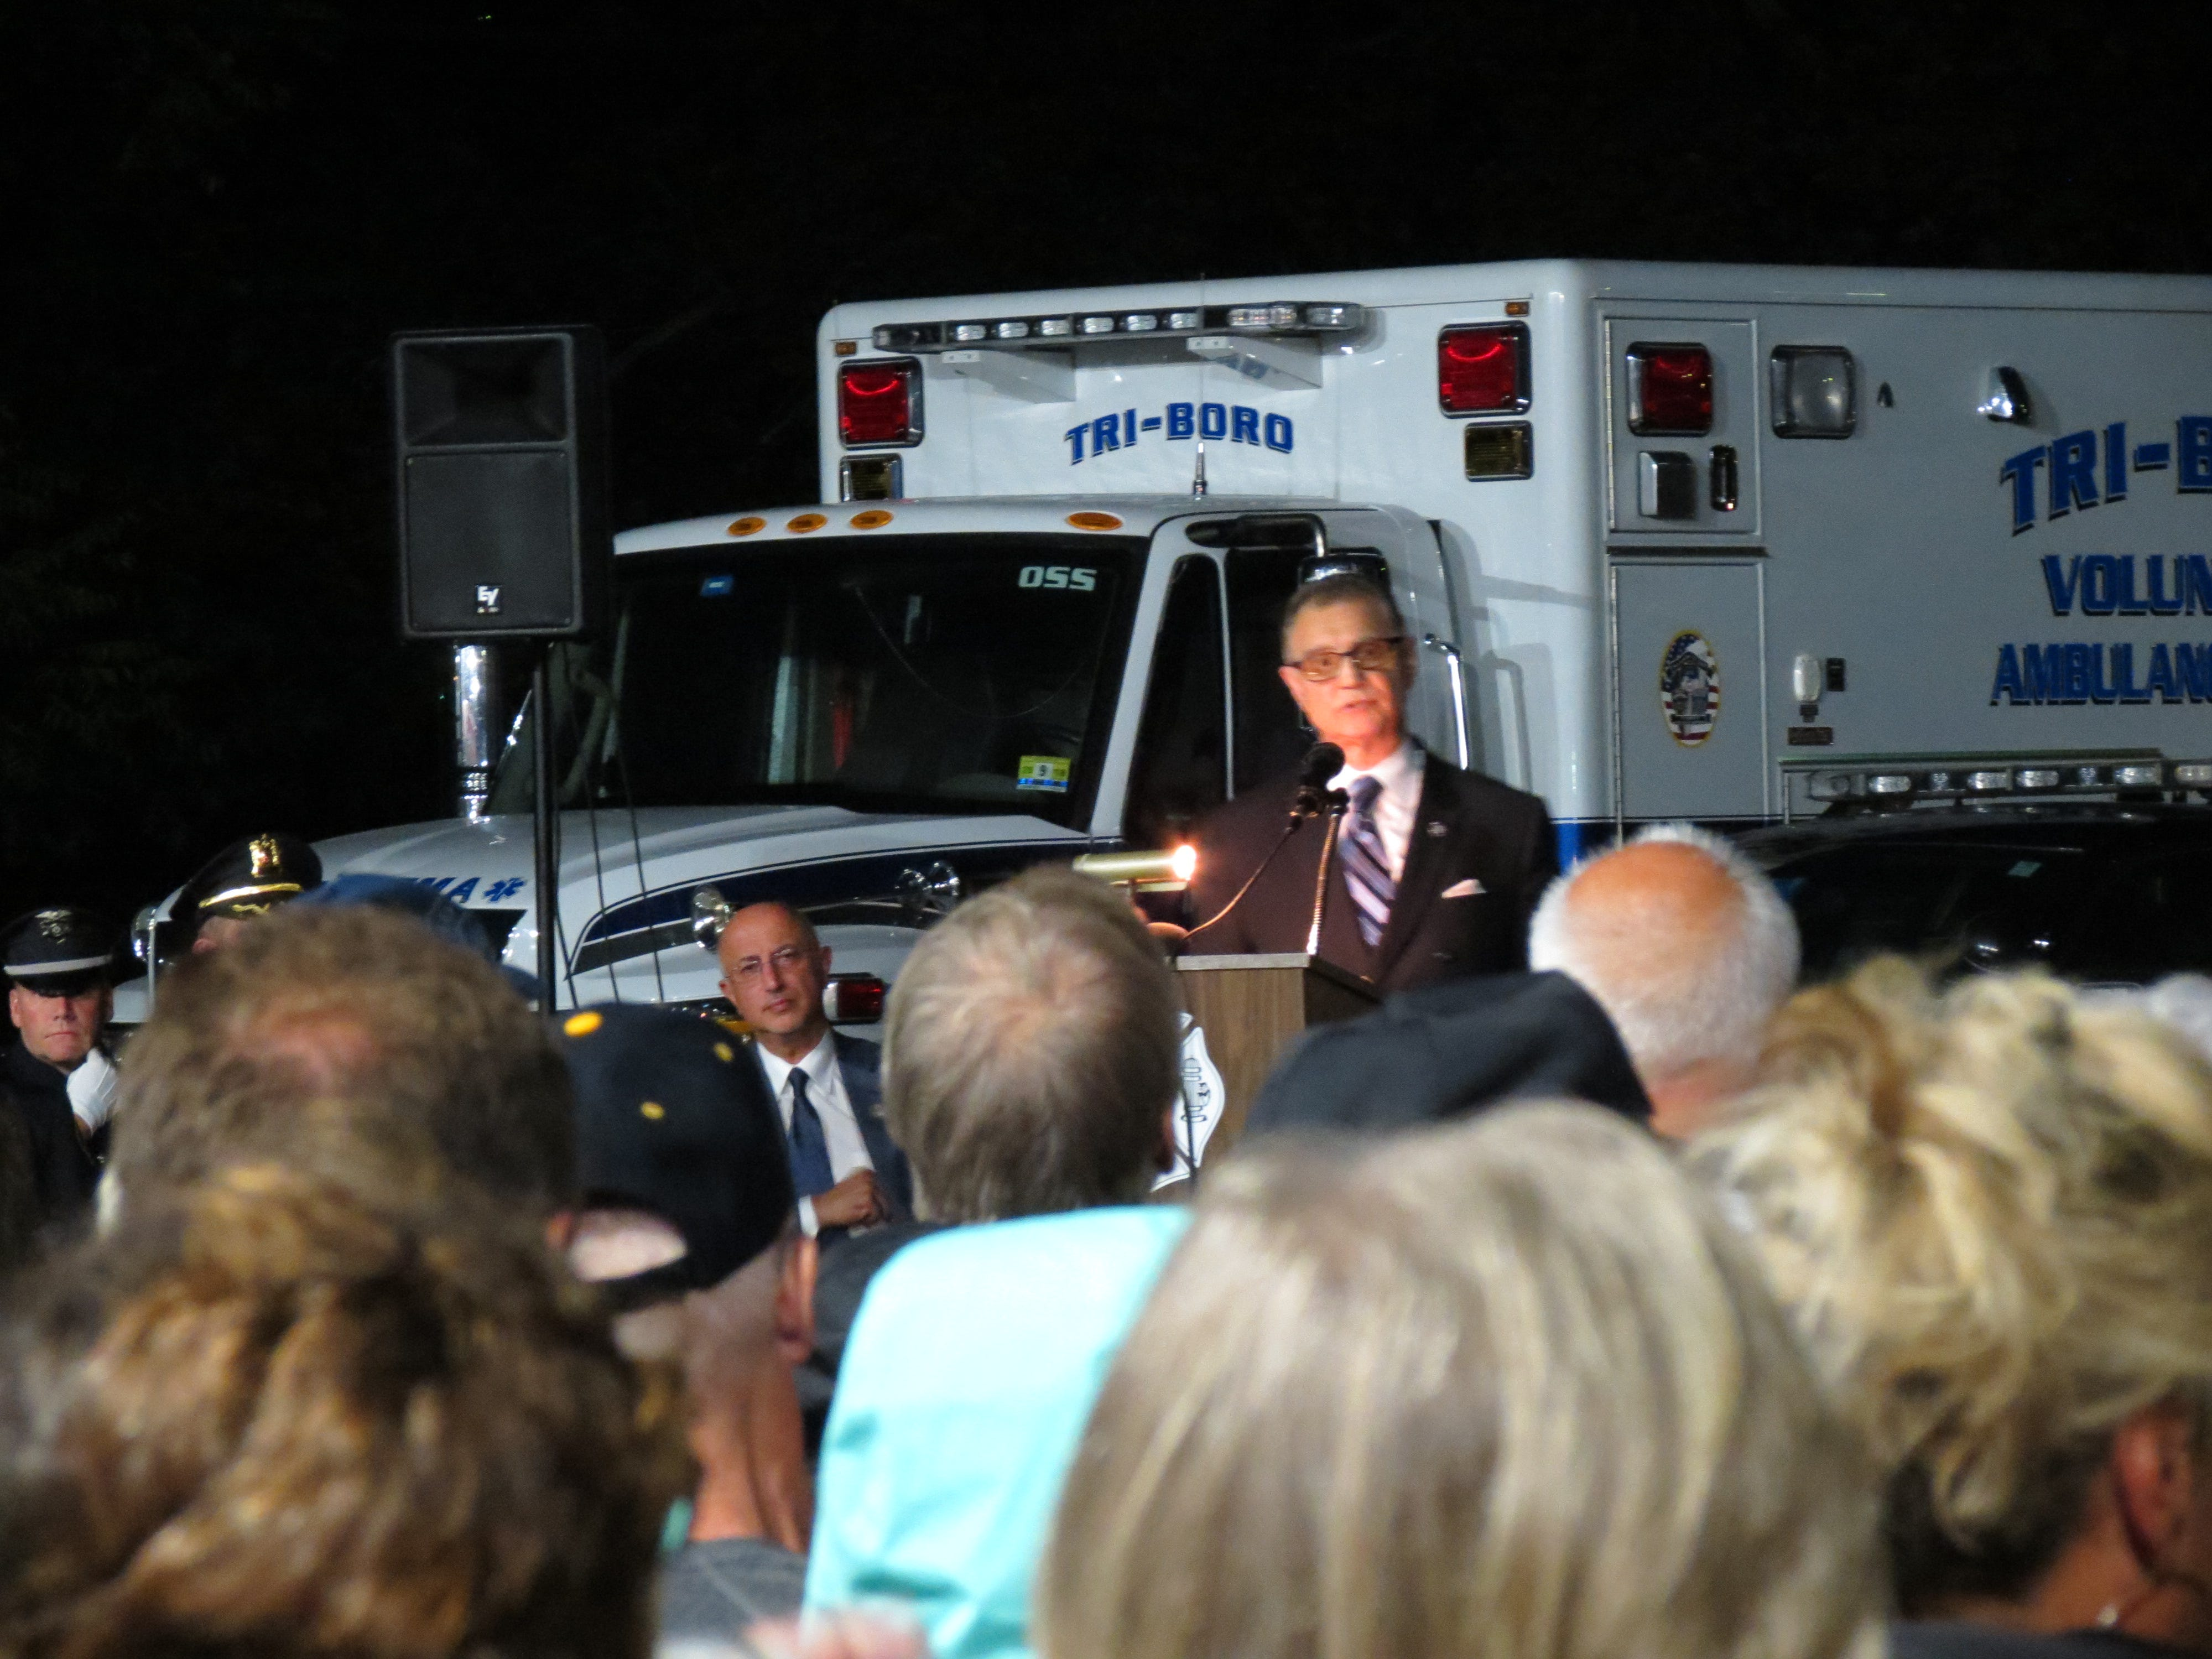 Acting Bergen County Prosecutor Dennis Calo speaks during a 9/11 ceremony at the Montvale Fire House on Tuesday, Sept. 11, 2018.